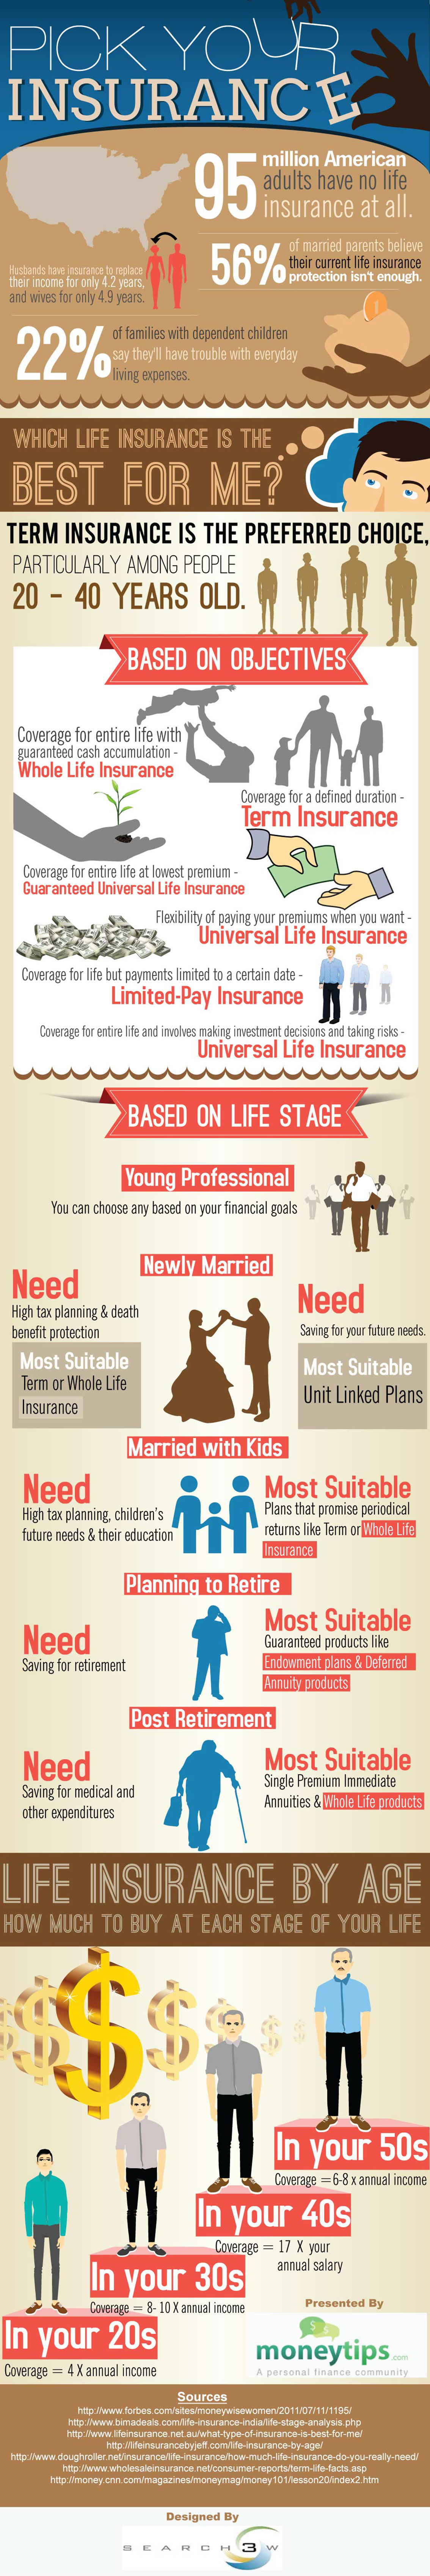 Which Life Insurance is the Best for Me Infographic